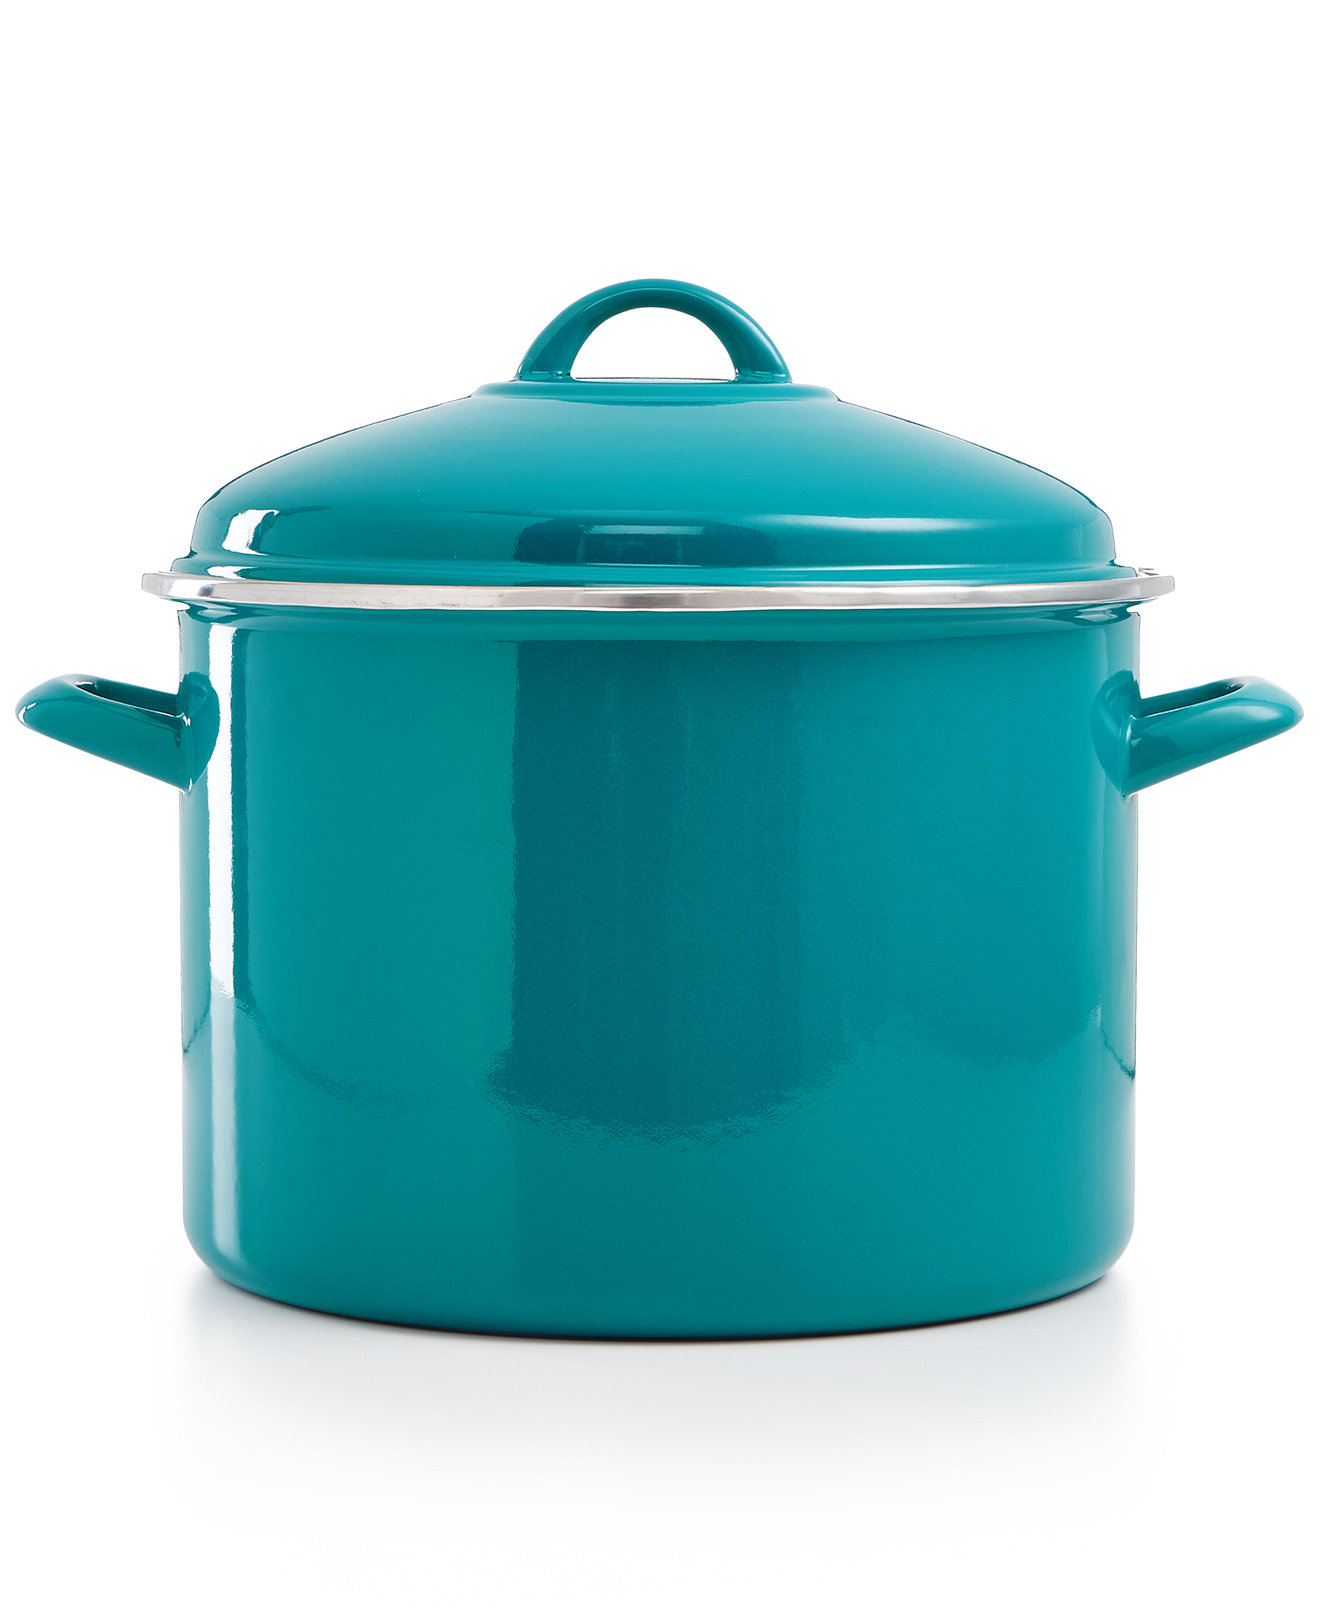 Martha Stewart Teal 10 Qt. Enamel on Steel Stockpot